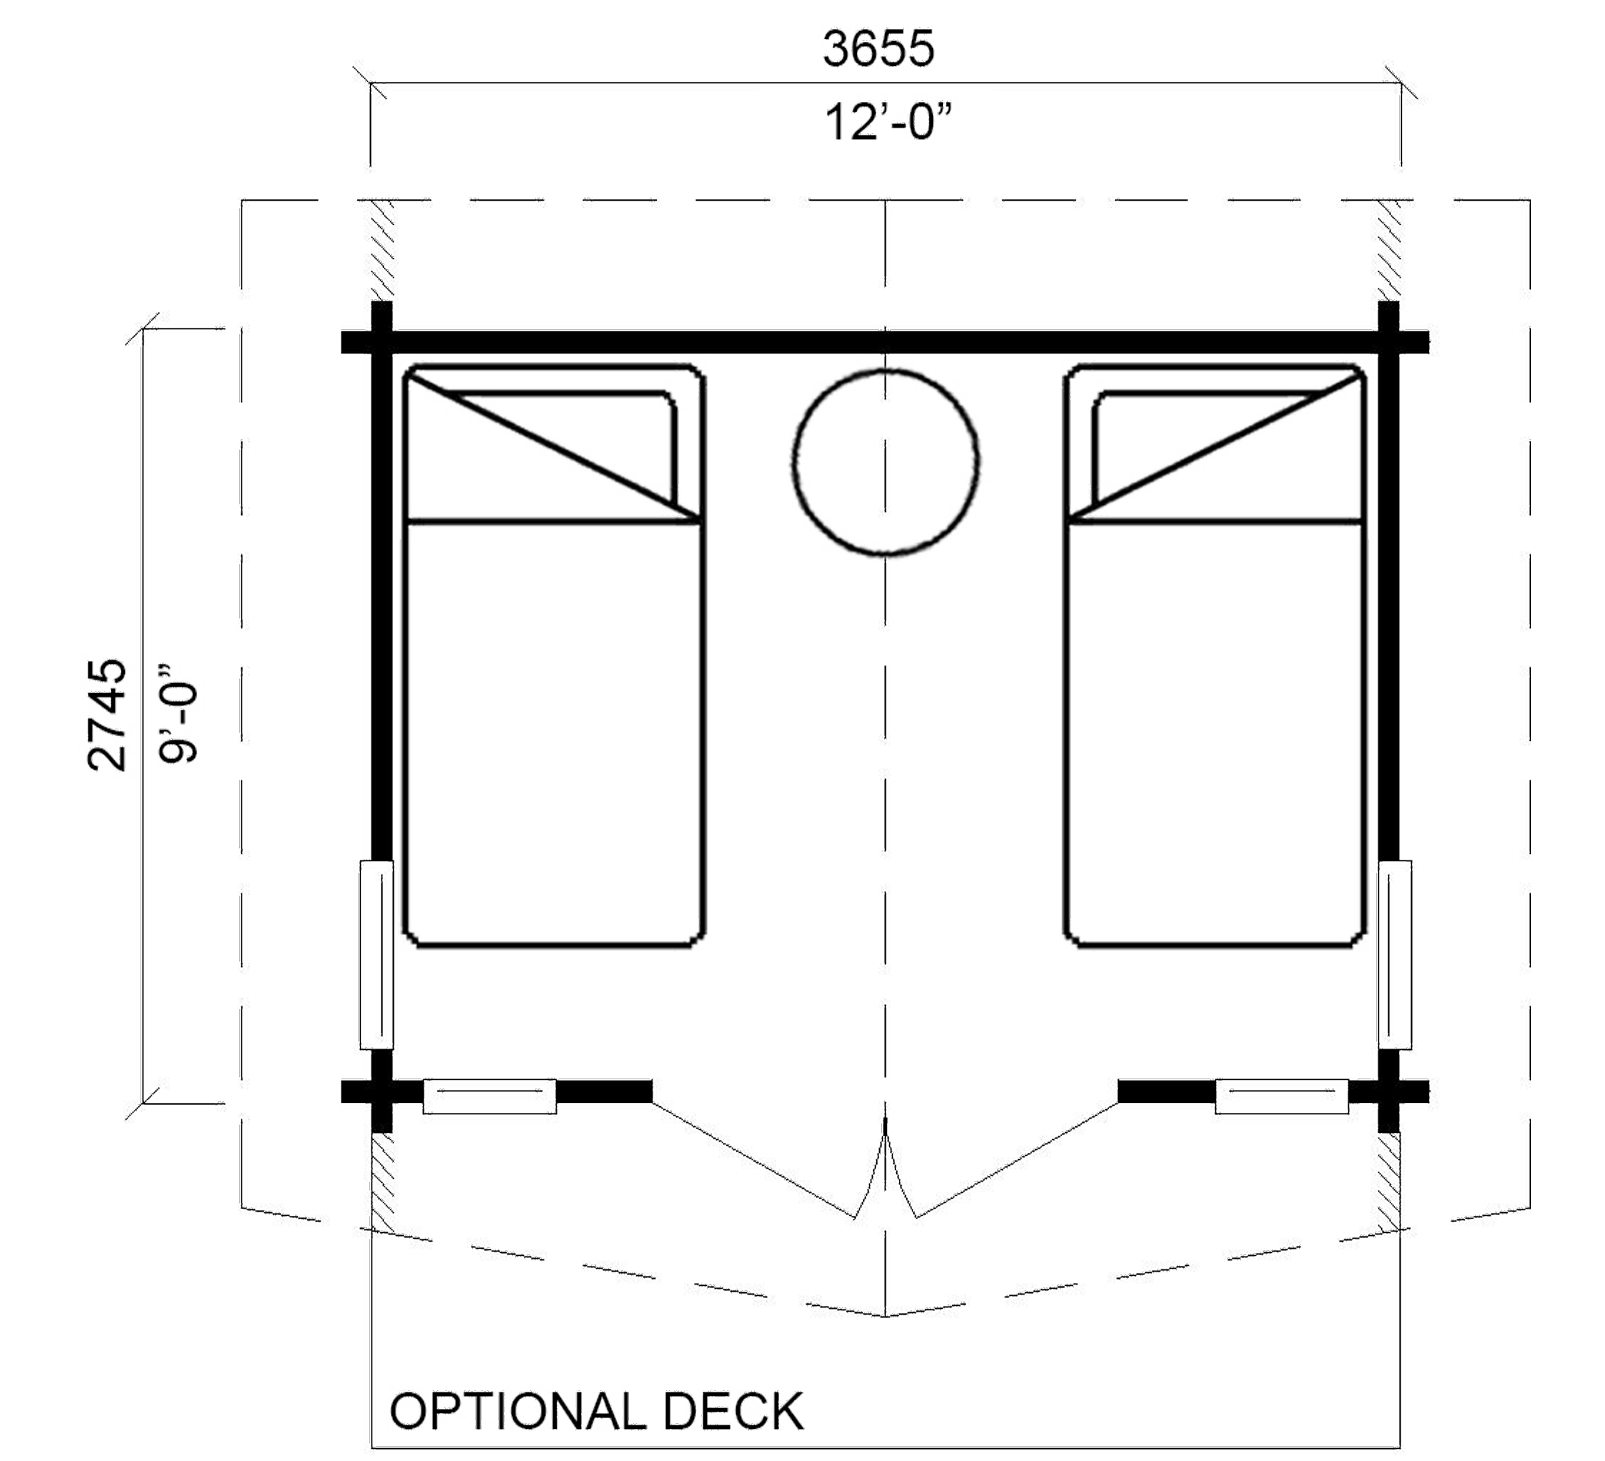 <strong>Main Floor:</strong> <strong>108 square feet (10.0 m²)</strong>